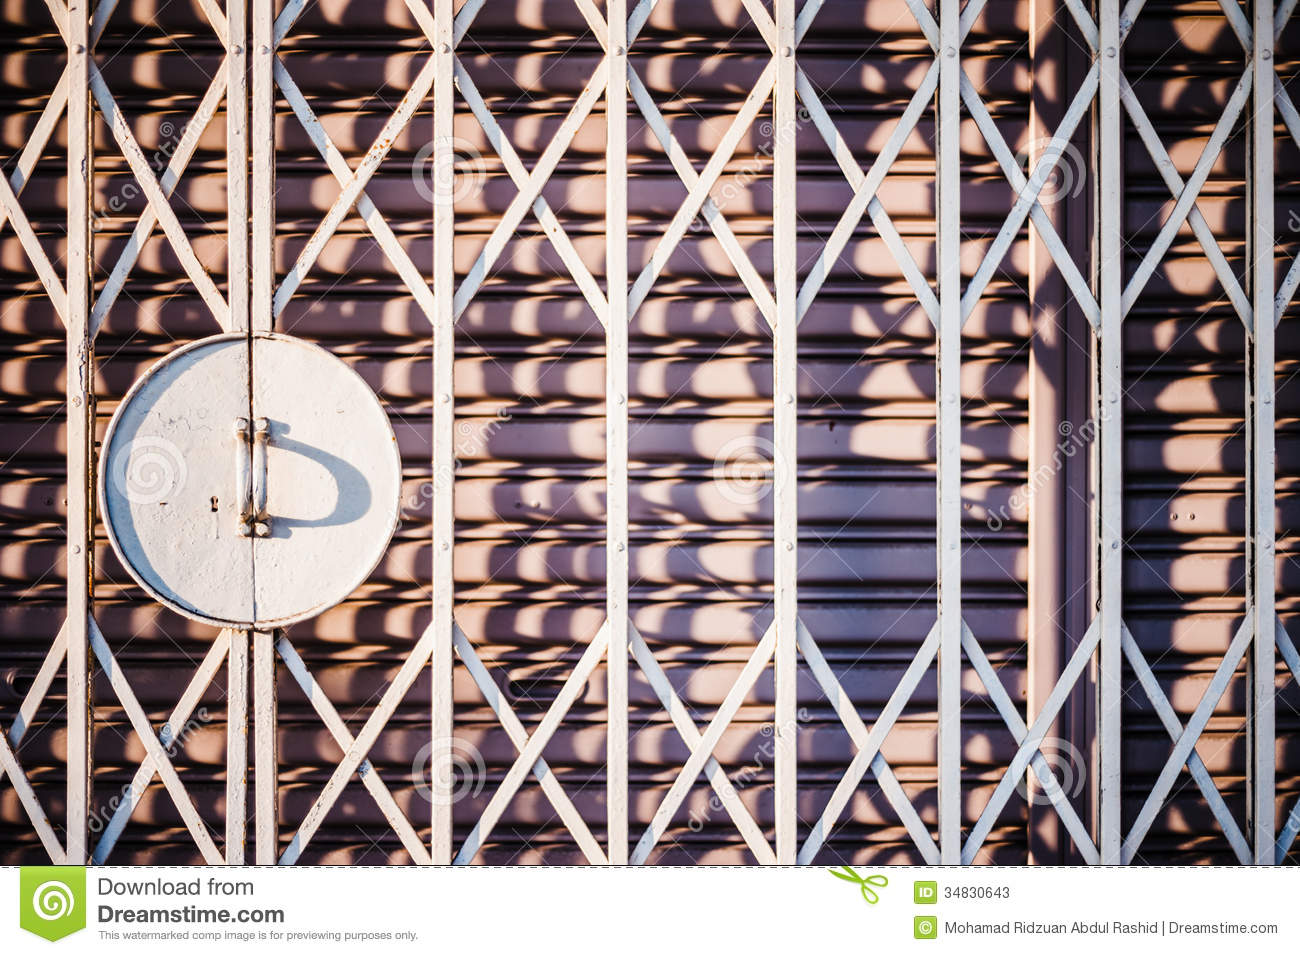 Royalty-Free Stock Photo. Download Closed Grilled Door ... & Closed Grilled Door stock image. Image of still steel - 34830643 pezcame.com